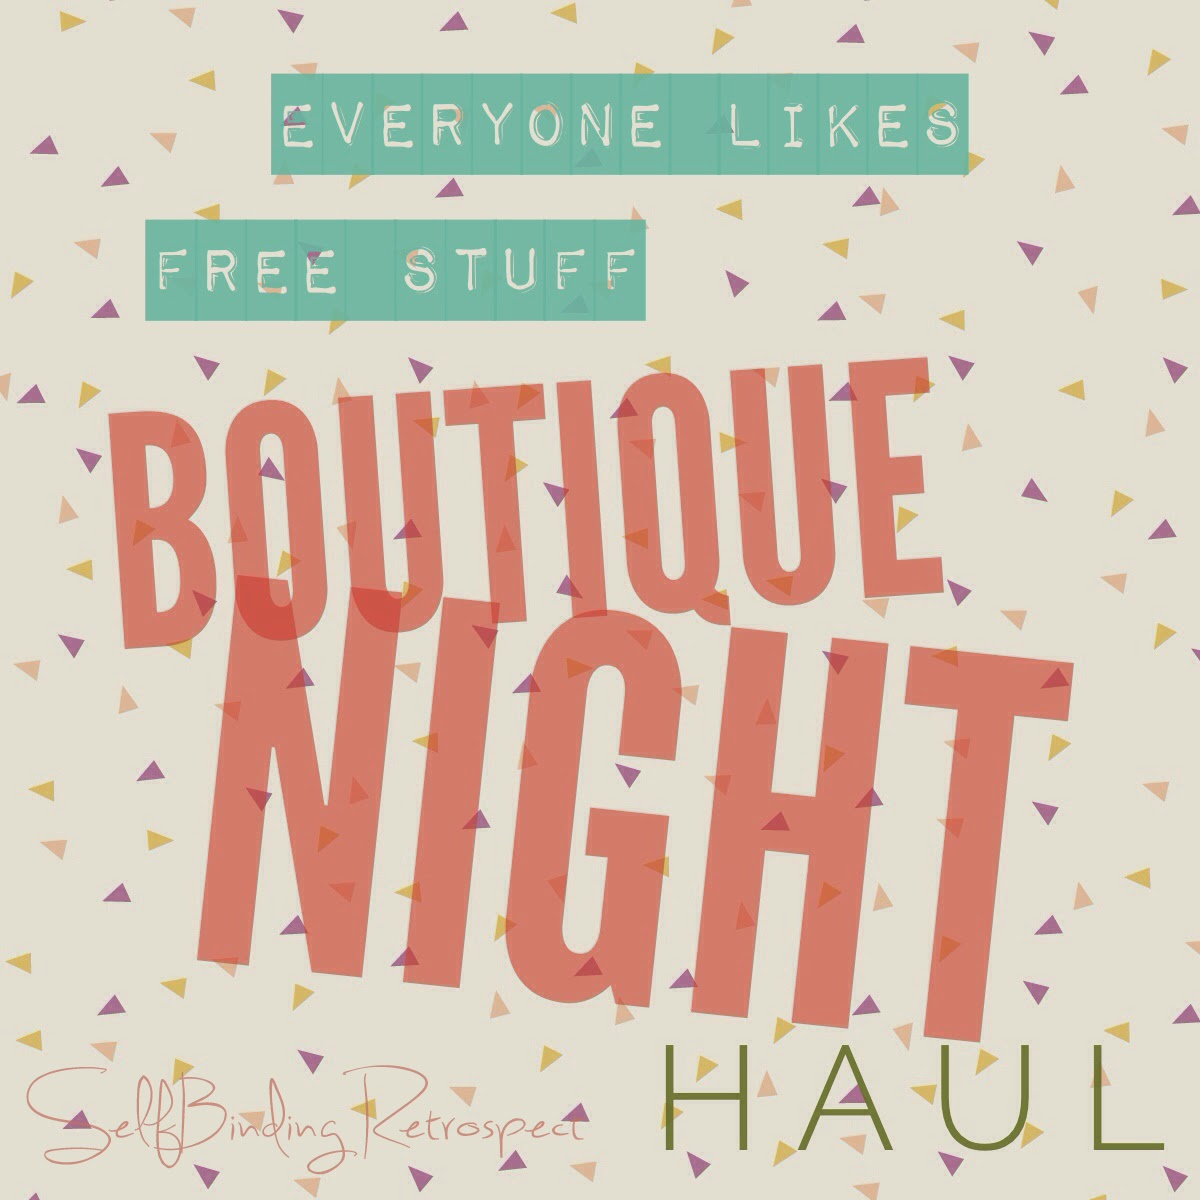 Boutique Night Haul - SelfBinding Retrospect by Alanna Rusnak